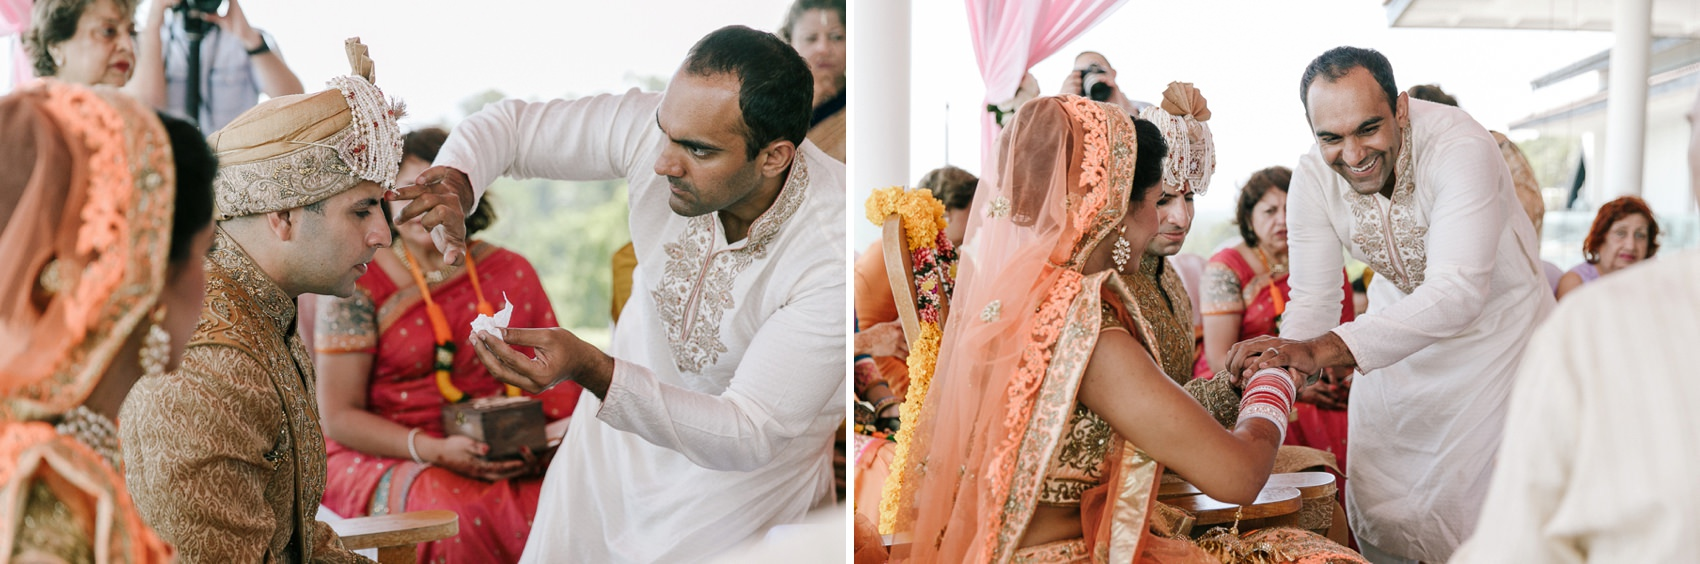 Indian-Wedding-Photography-Maala-Rohan_0223